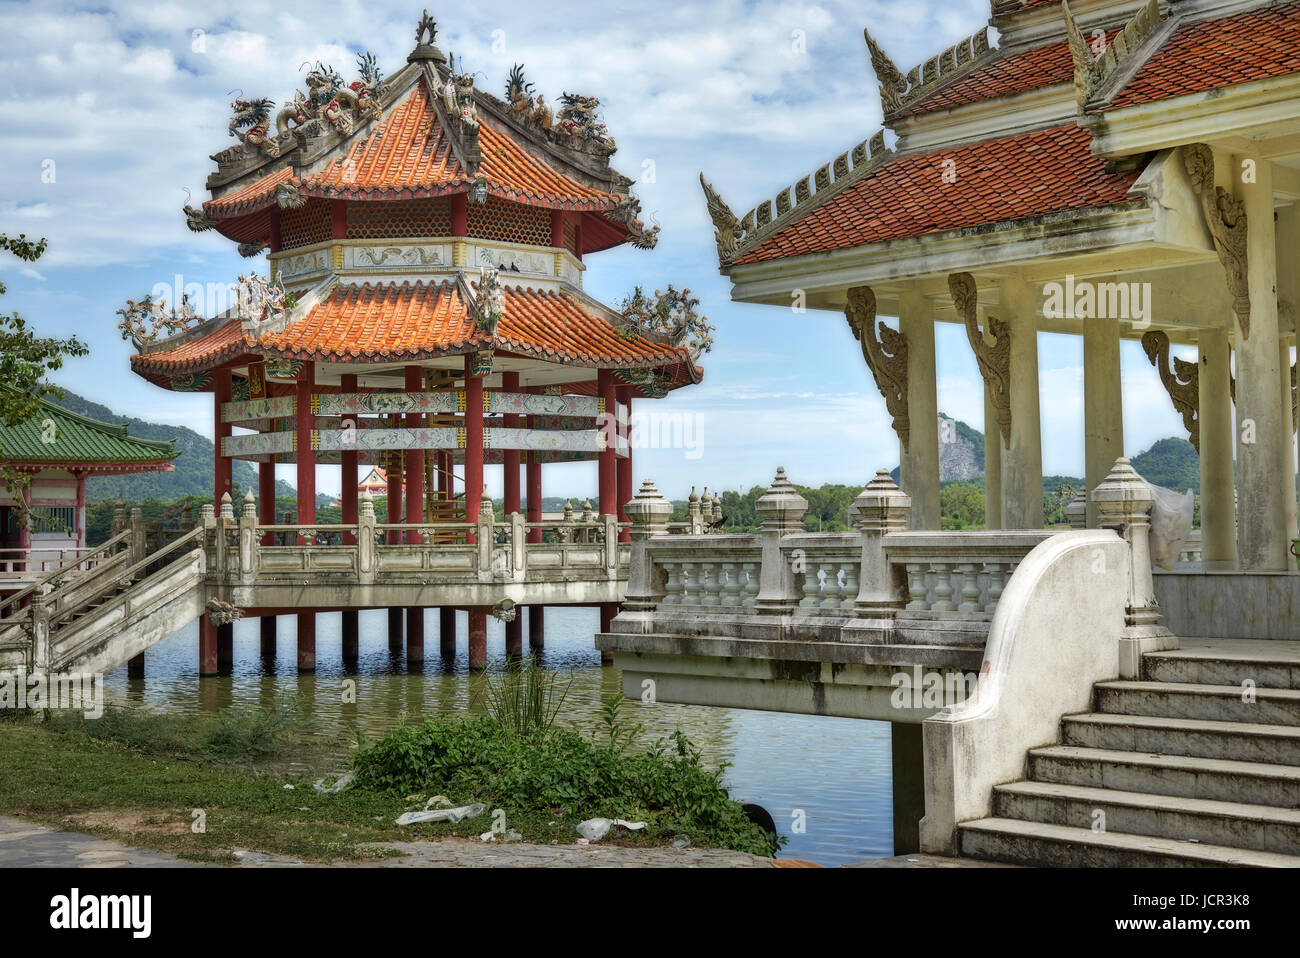 Abandoned and neglected Chinese Buddhist temple, Pattaya, Thailand - Stock Image